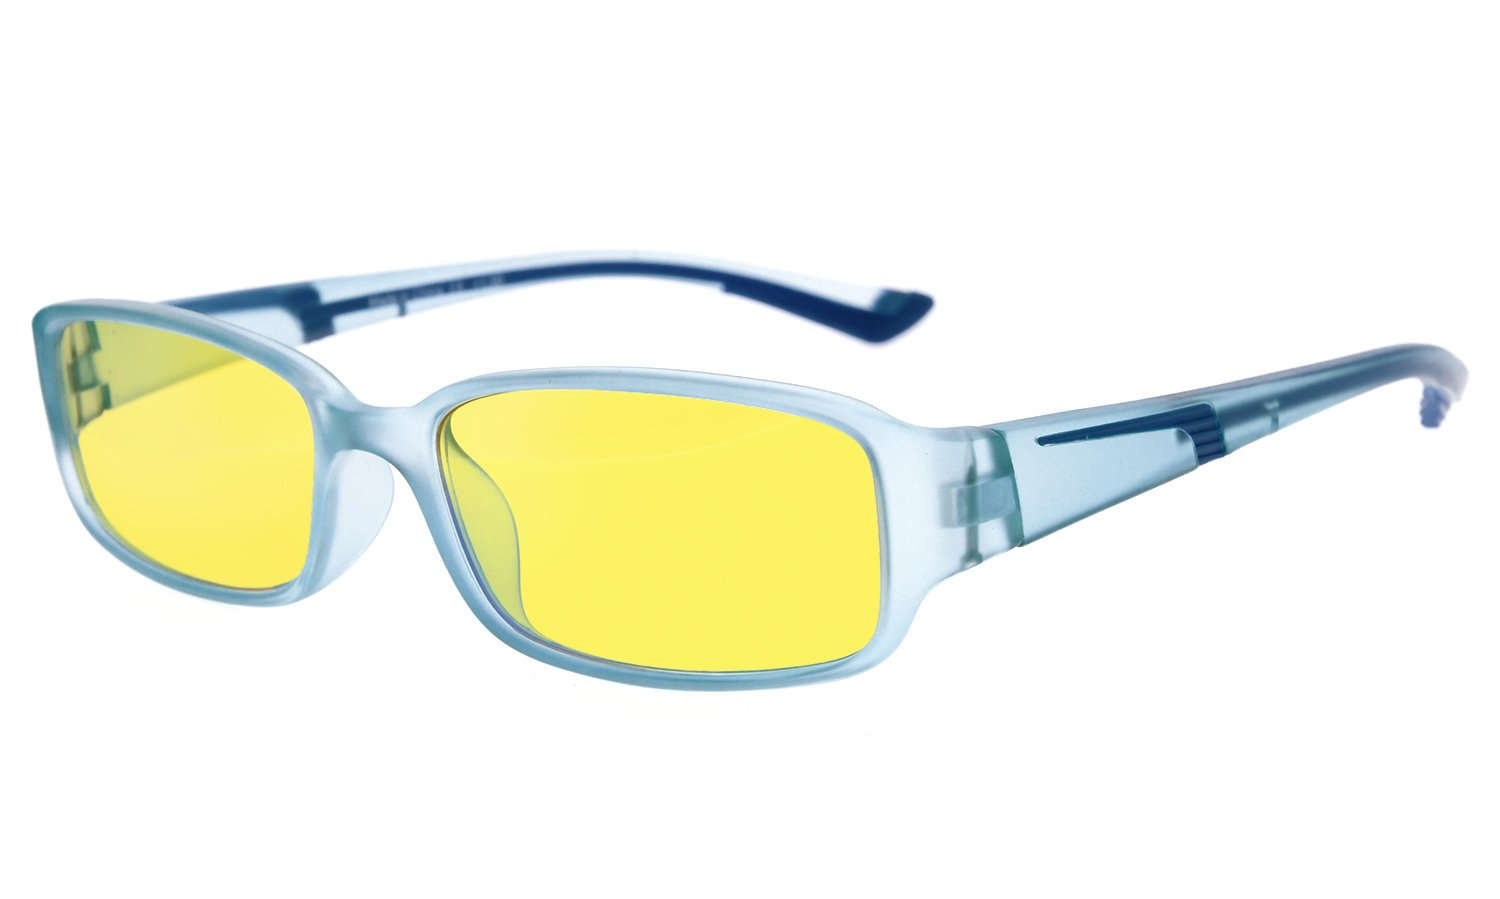 d45abd138e56c Eyekepper Computer Reading Glasses Anti Blue Light Yellow Tinted Lens for  Electronic User Blue CGXM03